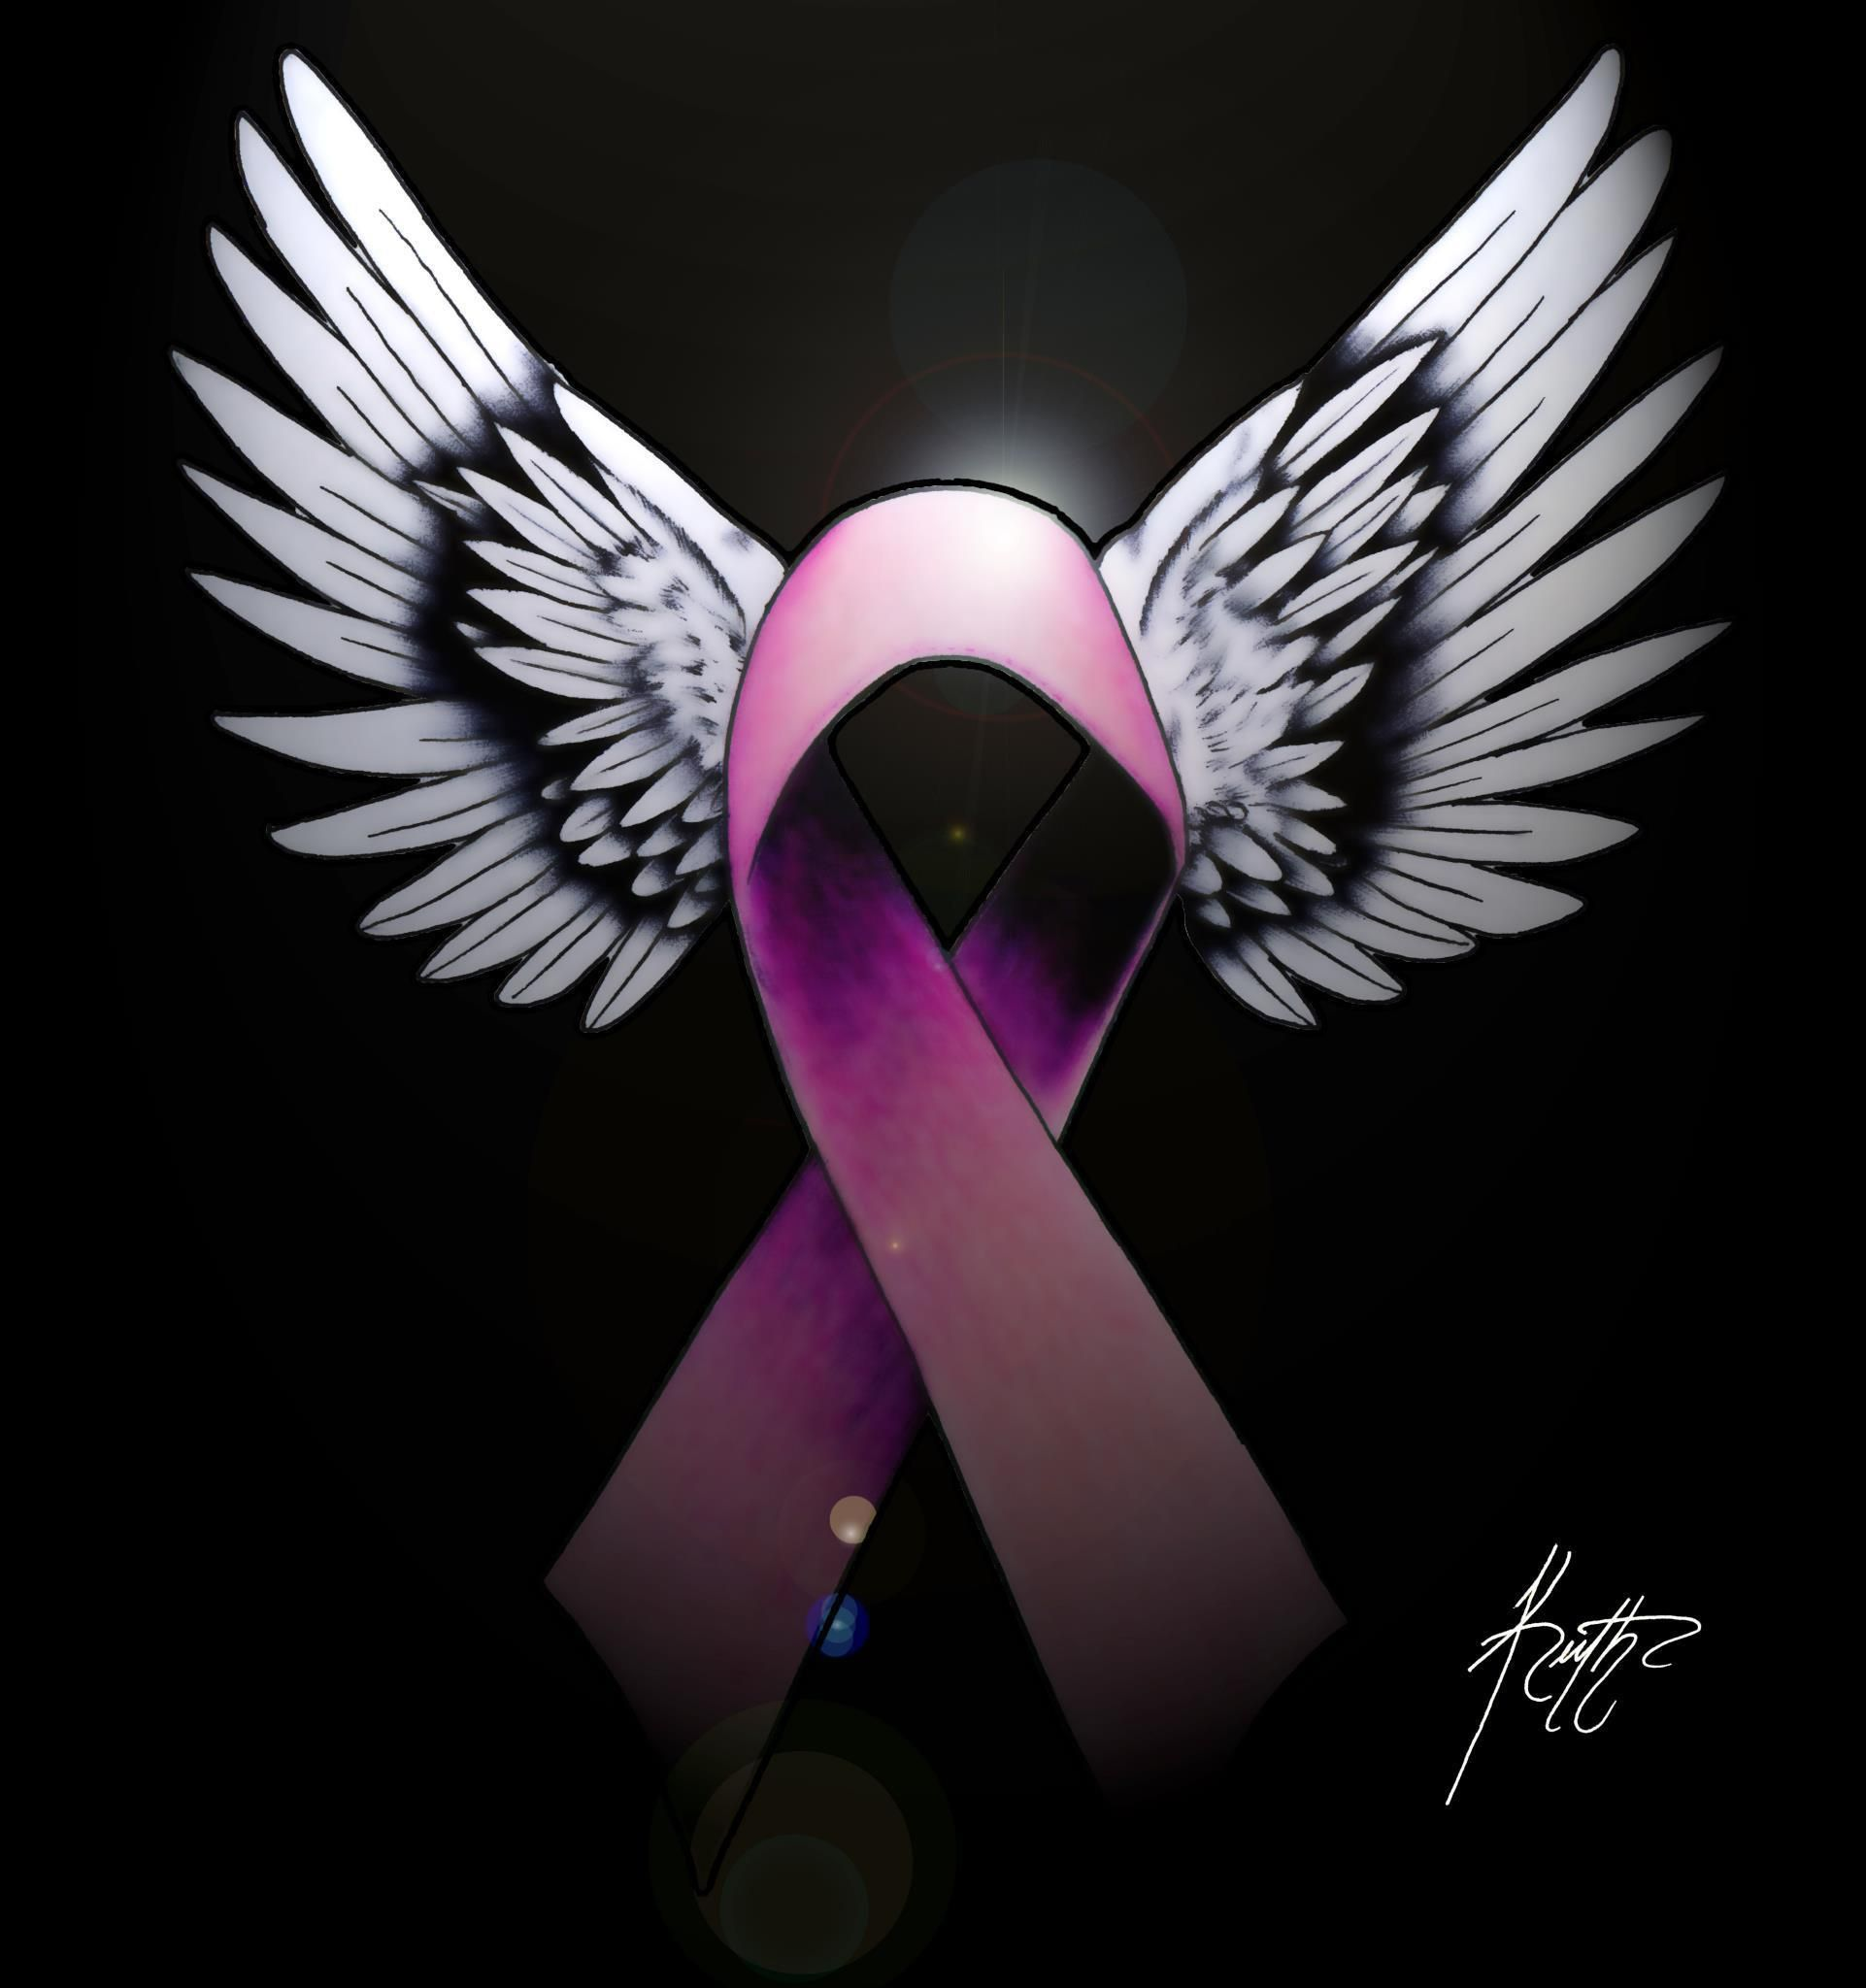 Healing Wings Just Breathecystic Fibrosis Pinterest Cancer